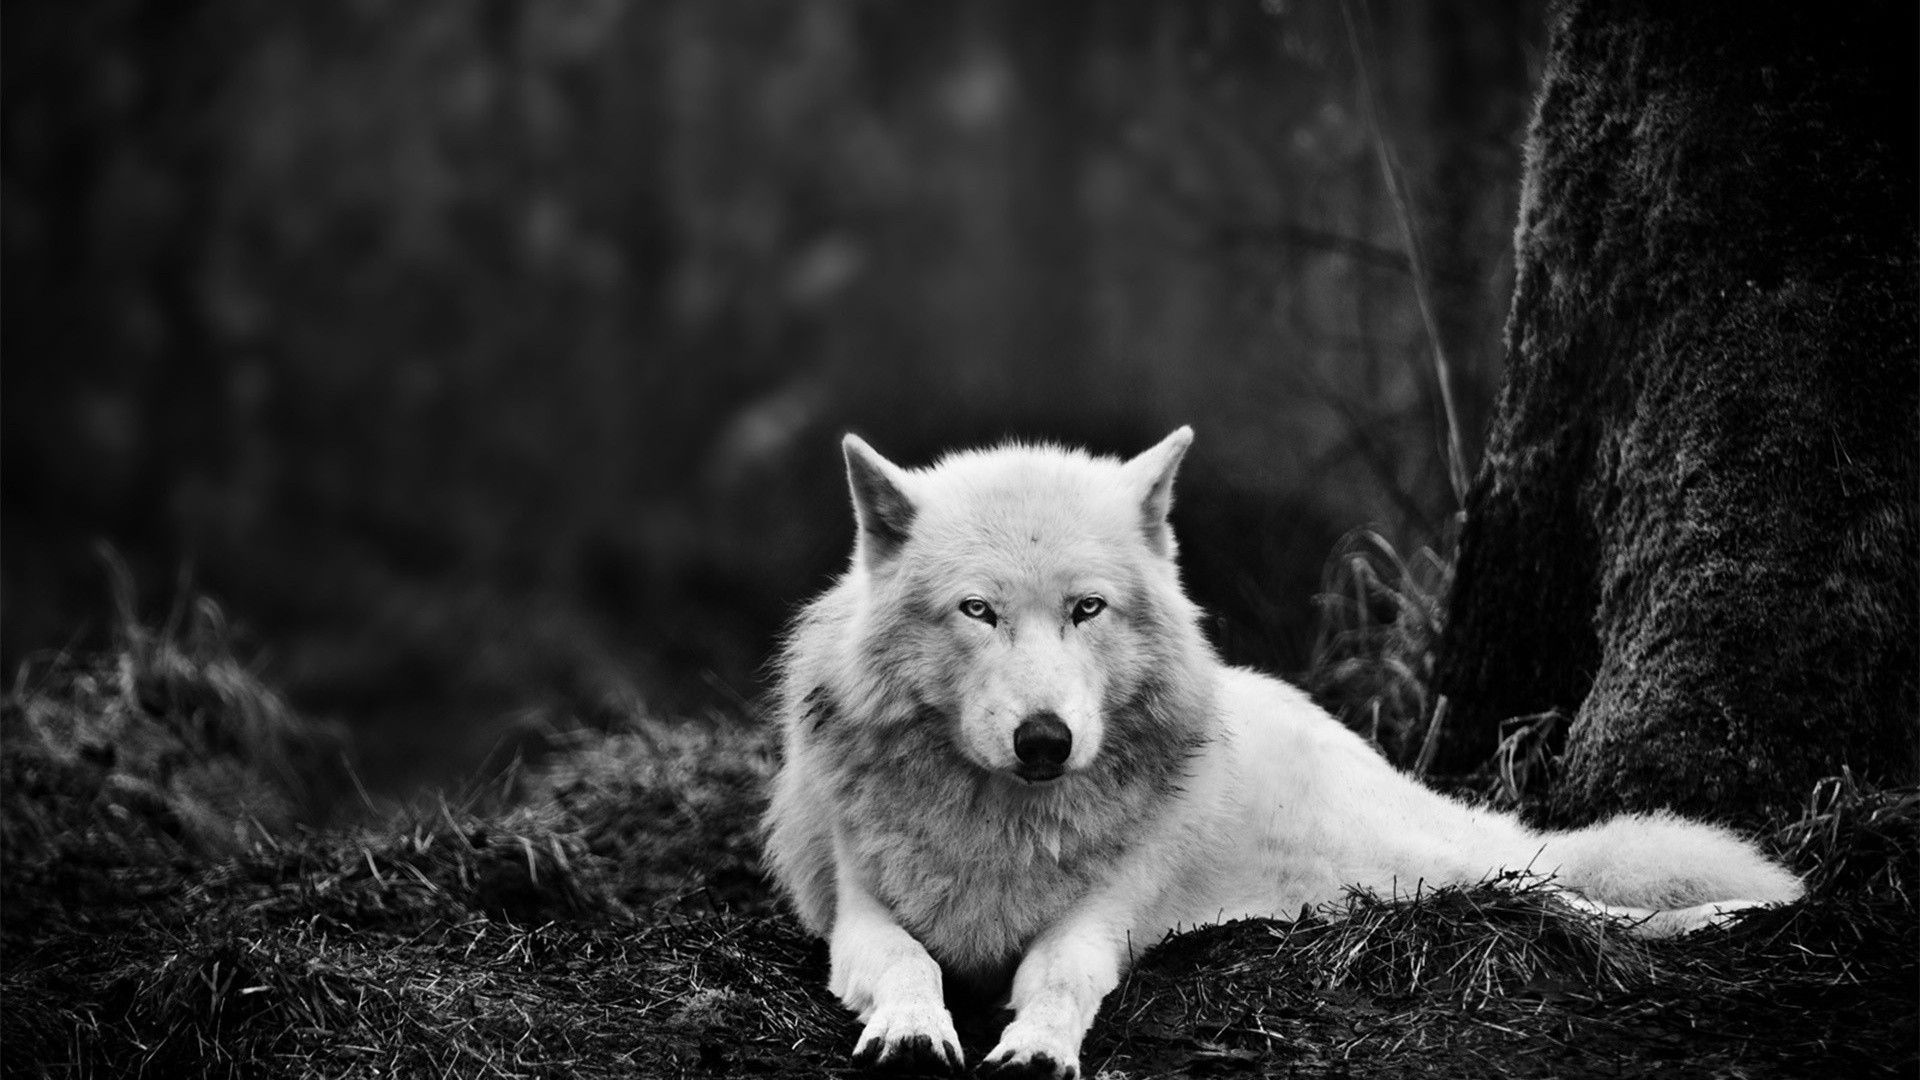 Hd Wolf Wallpapers Wallpaper 1920 1200 Wolves Hd Wallpapers 45 Wallpapers Adorable Wallpapers Wolf Wallpaper Animal Bedroom Wolf Background